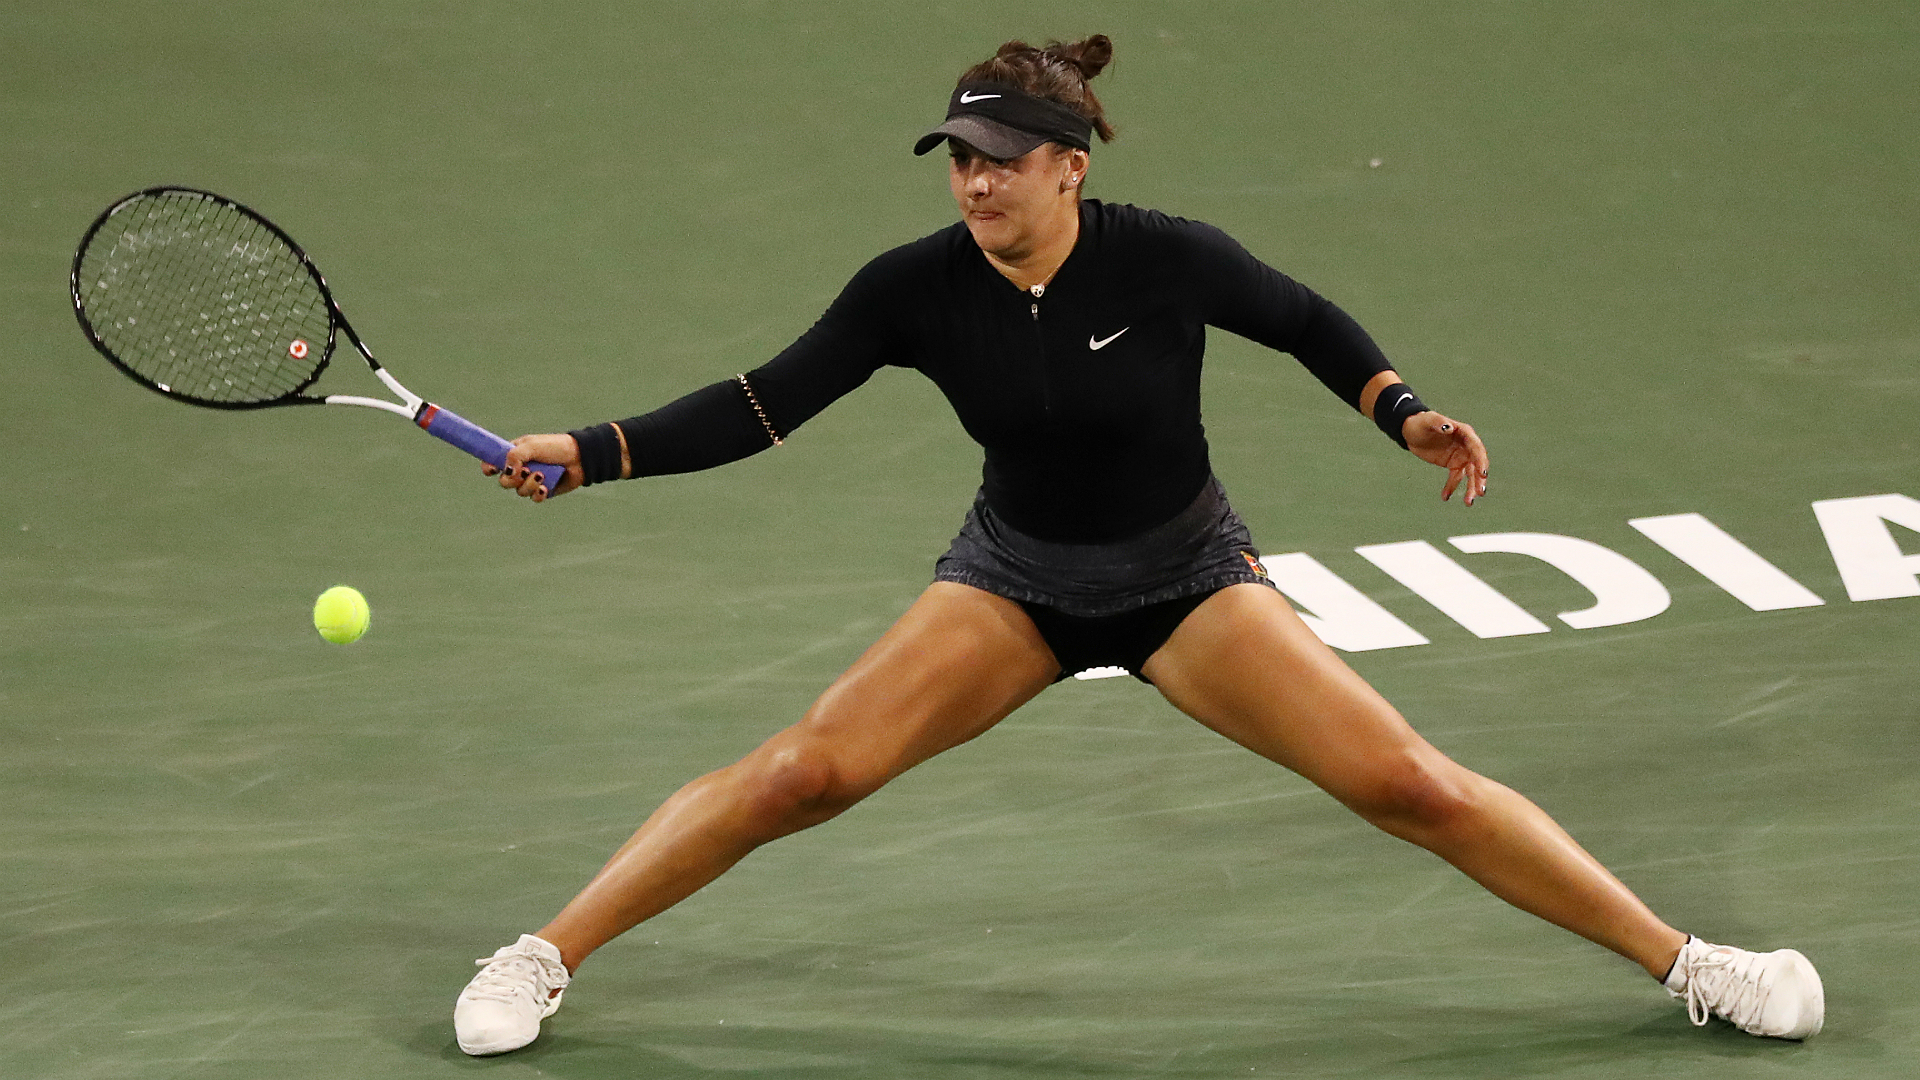 Andreescu overcomes fatigue and Svitolina to reach Indian Wells final